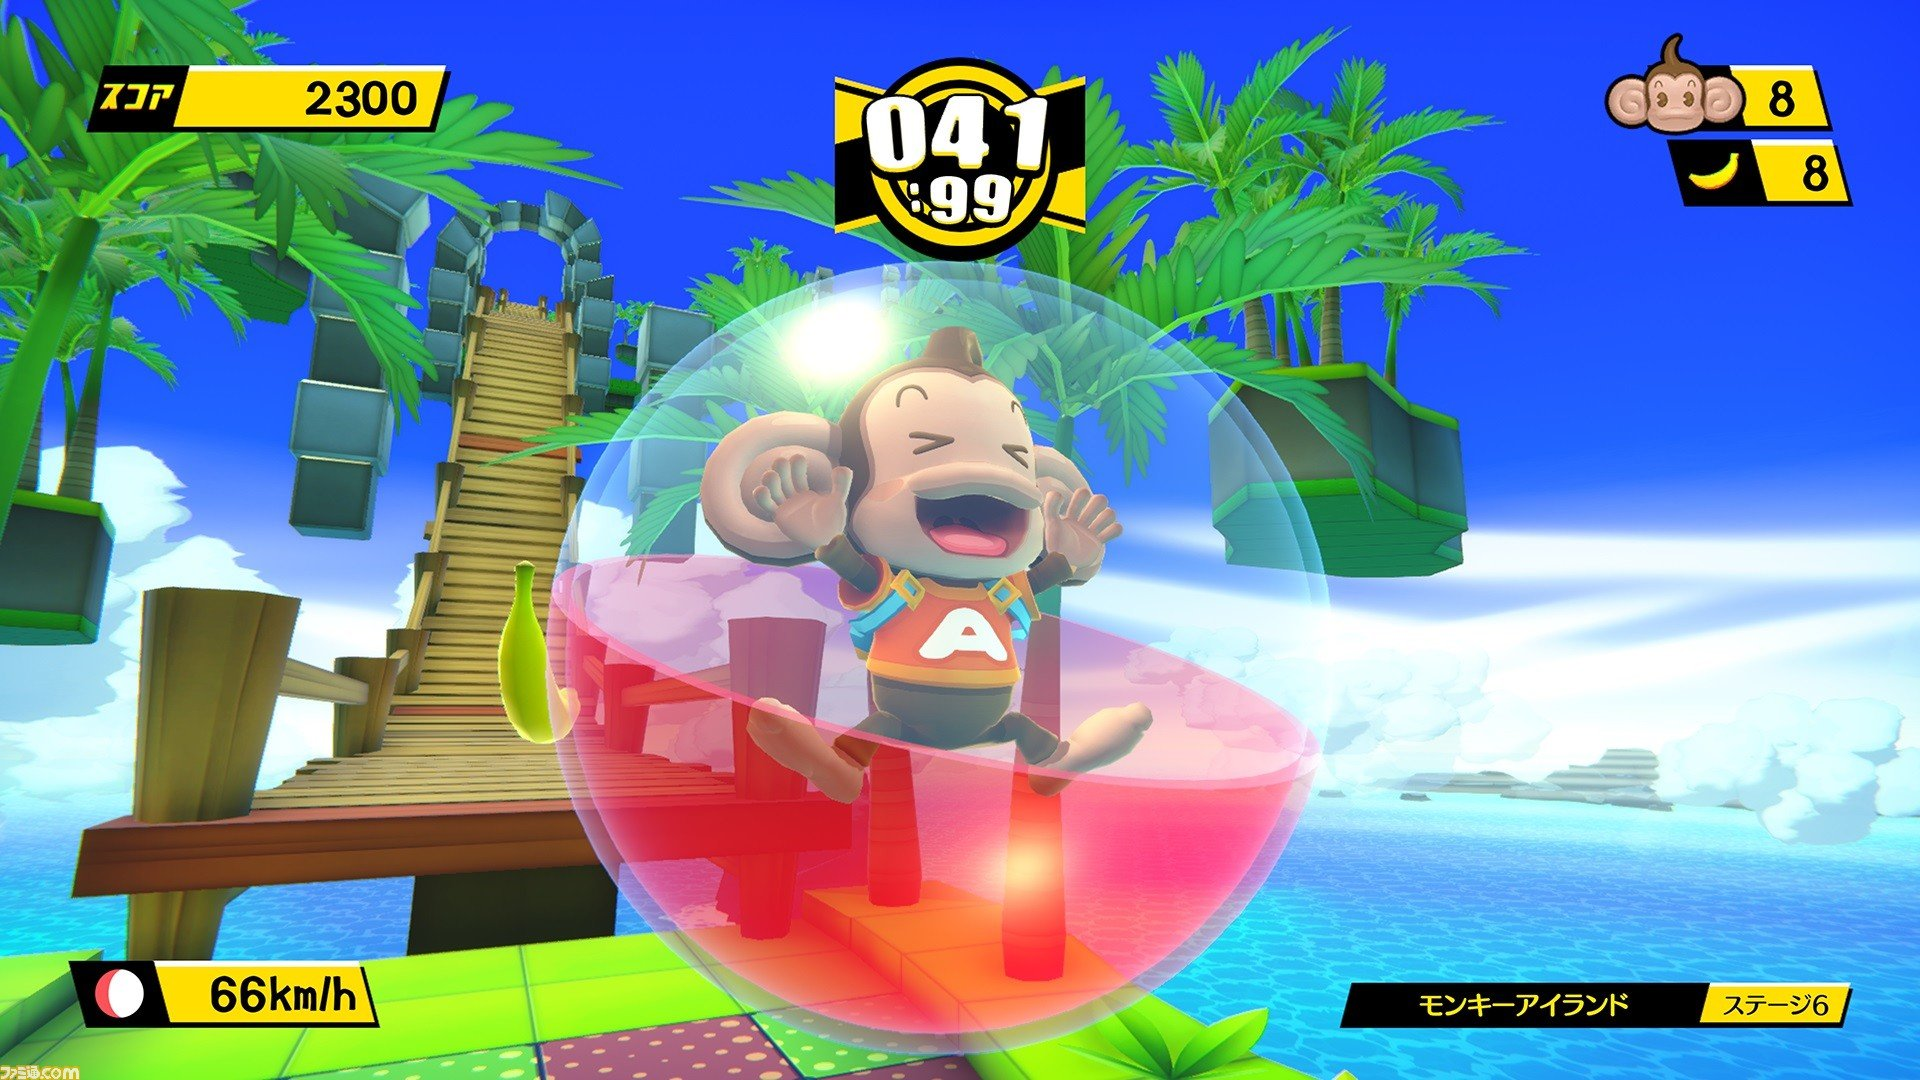 Nouveau jeu Super Monkey Ball Super Monkey Ball à venir à Switch, PS4, Xbox One et PC 31 octobre